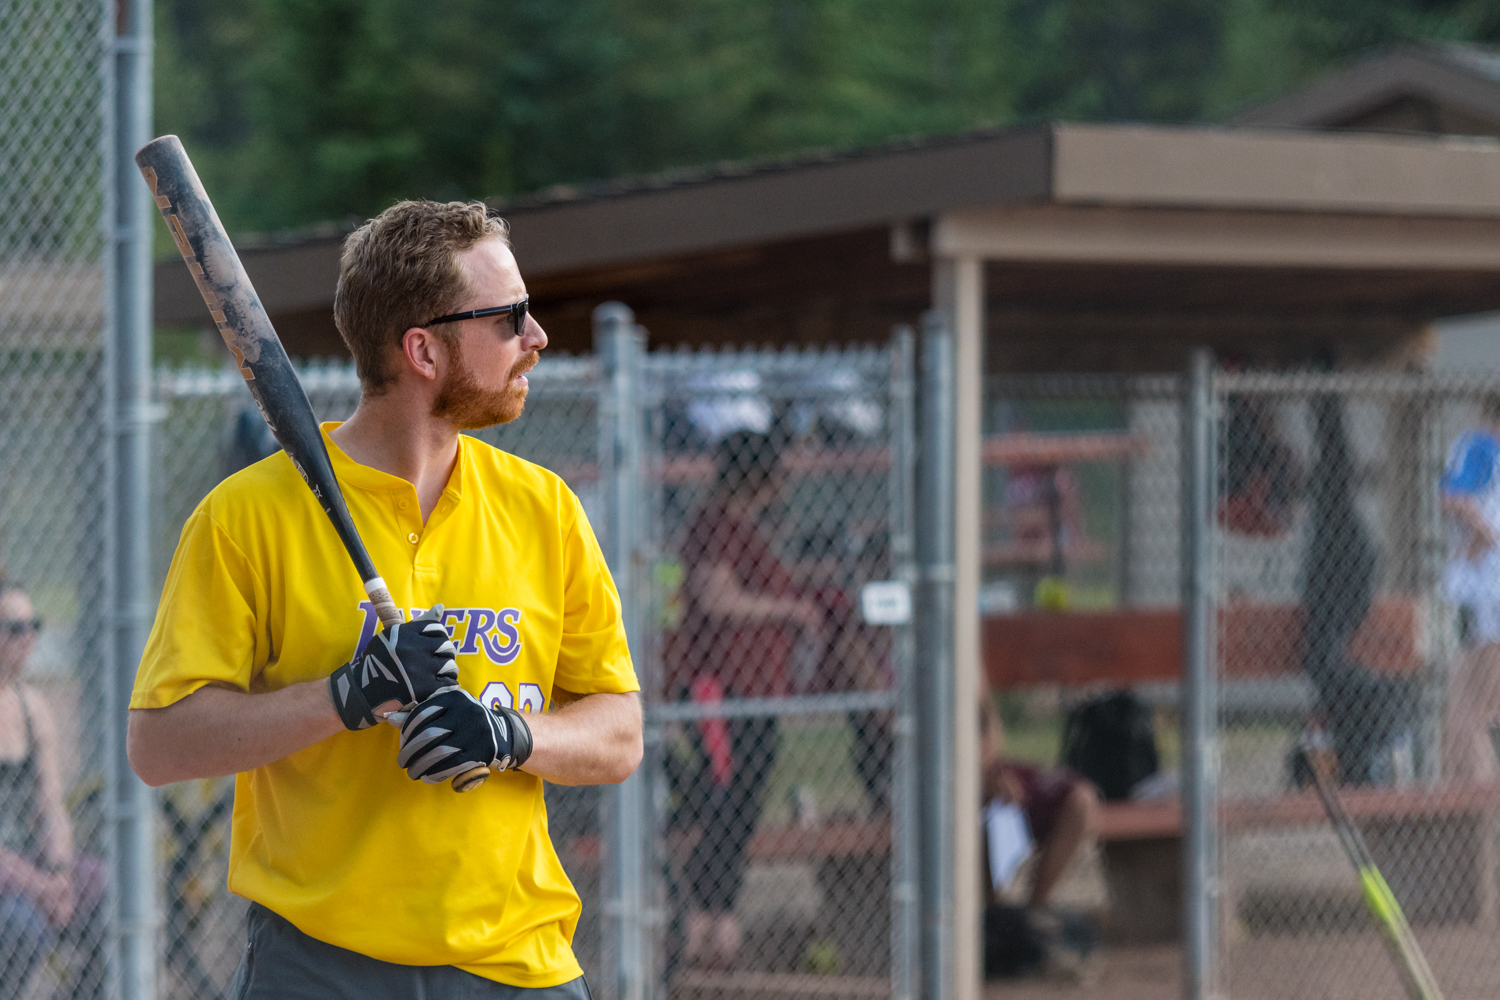 2017 08 22 Softball Playoffs 1-191.jpg